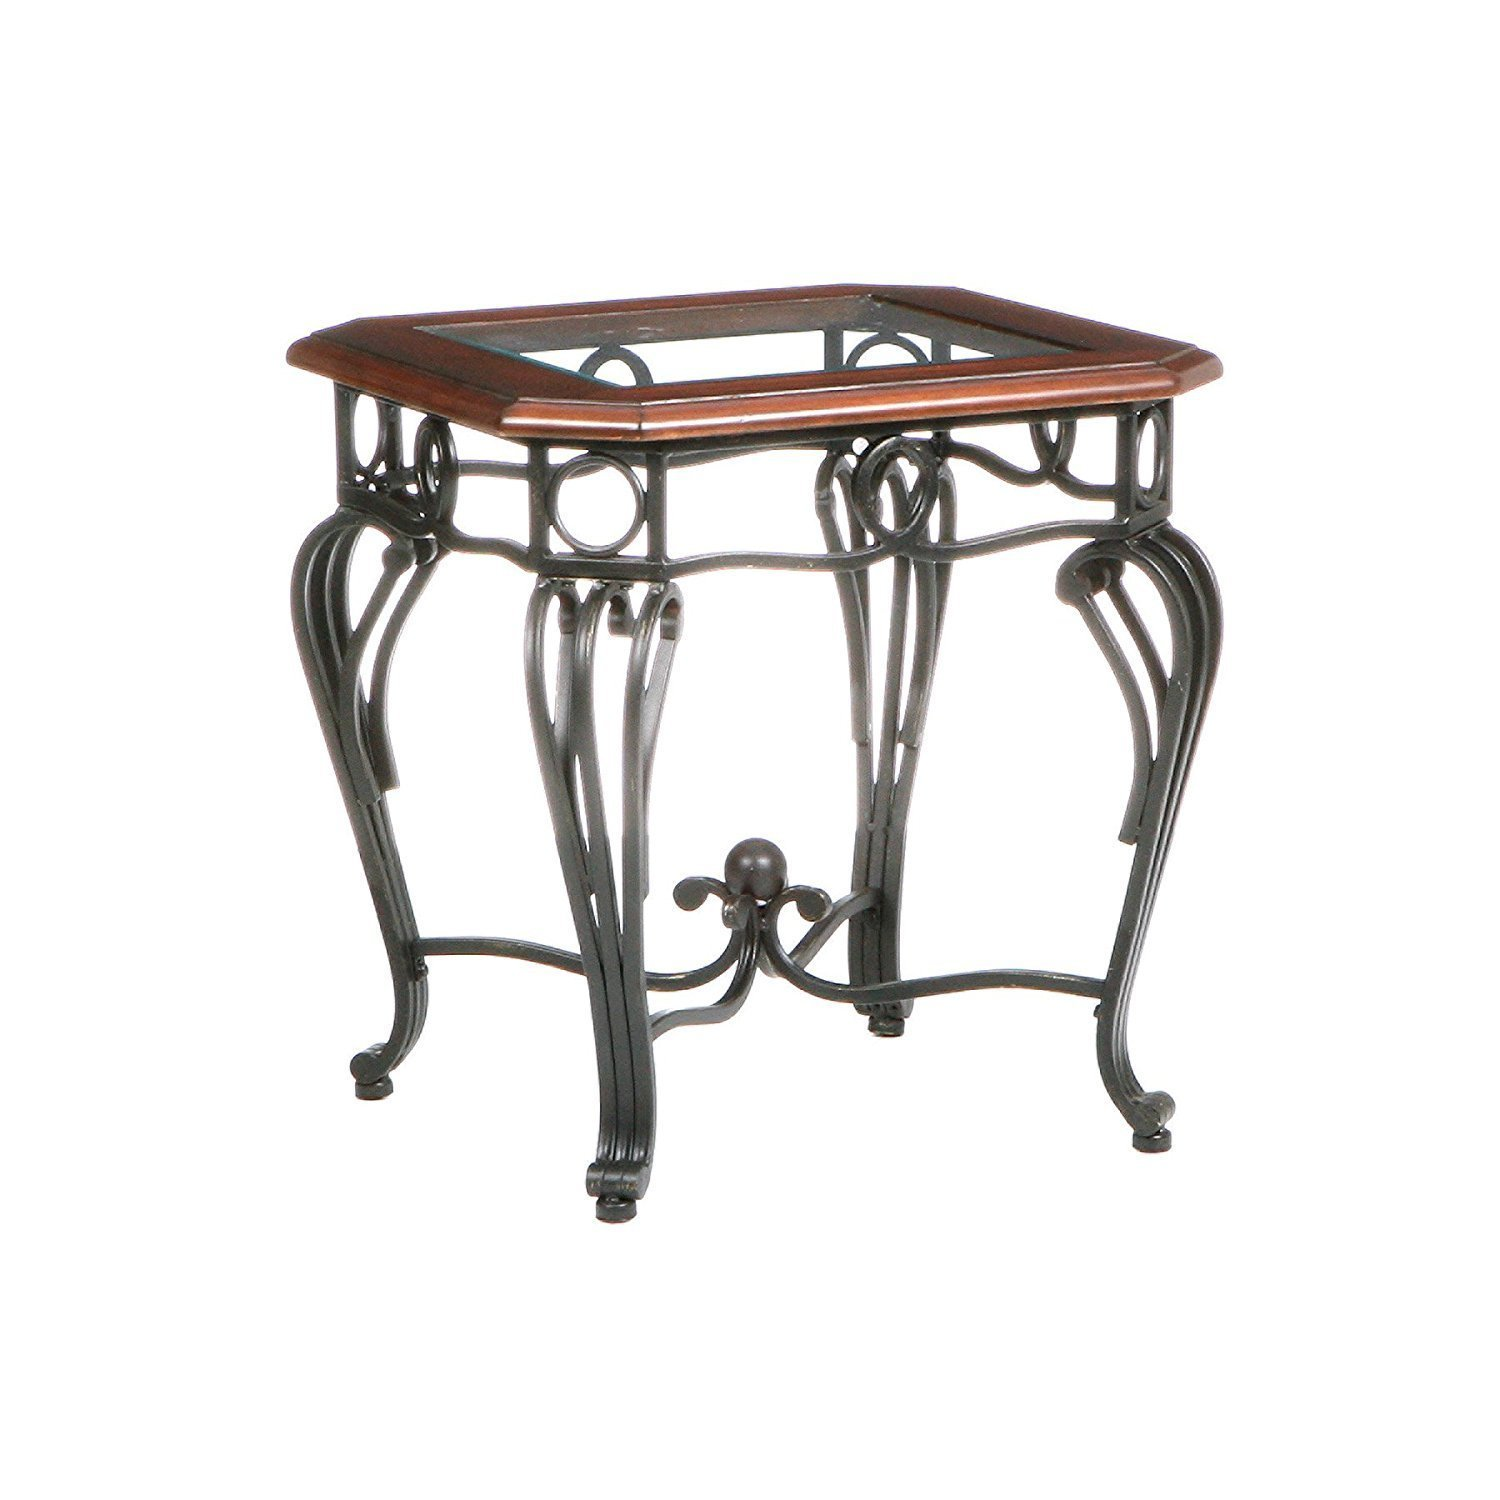 Wrought iron end tables with glass tops home furniture for Wrought iron and glass table